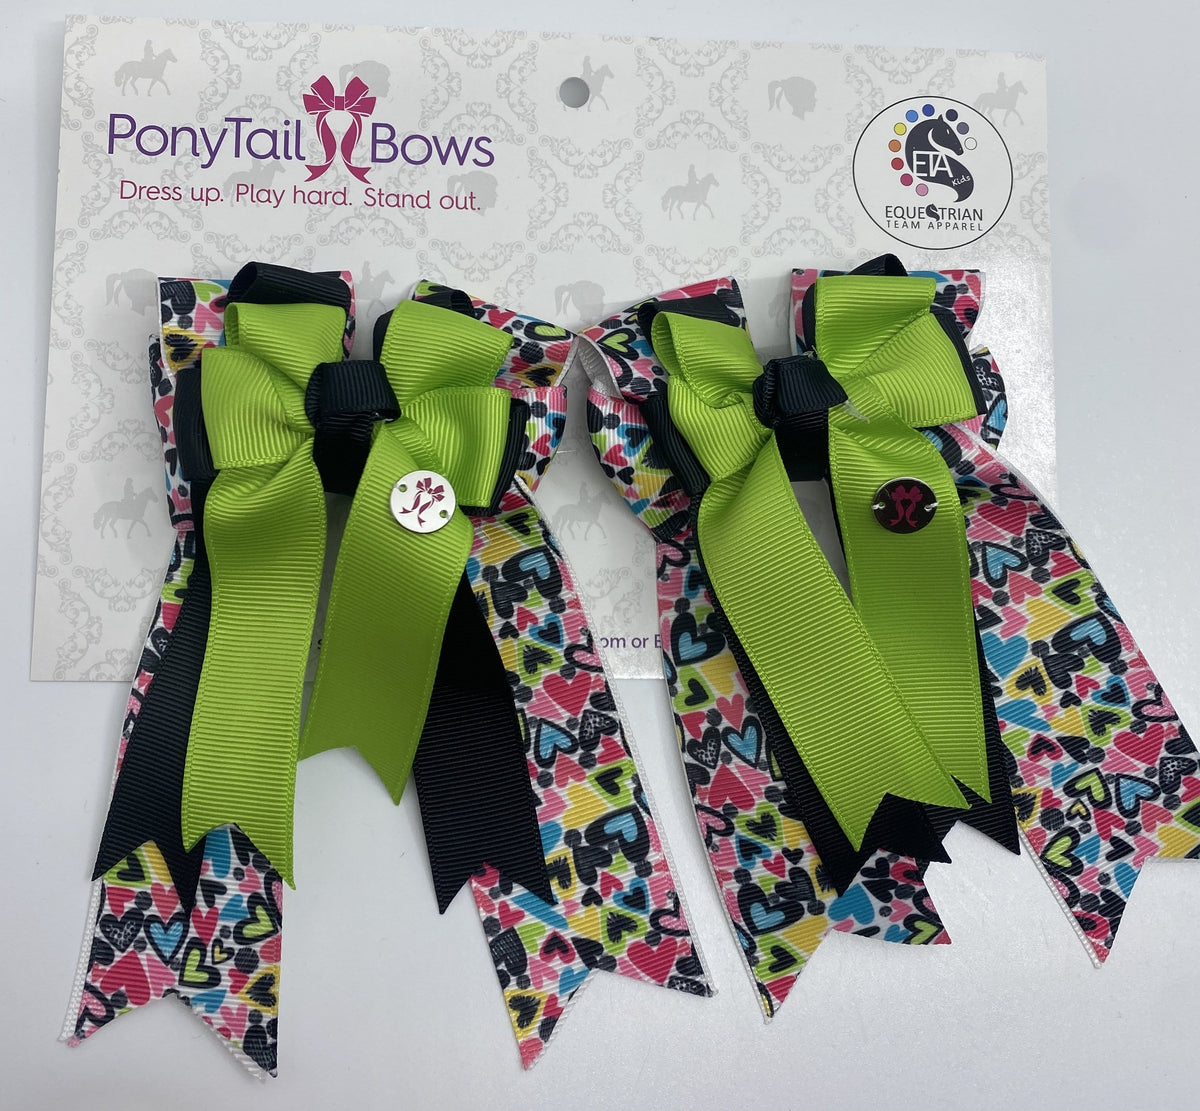 "PonyTail Bows 3"" Tails All The Hearts Lime PonyTail Bows equestrian team apparel online tack store mobile tack store custom farm apparel custom show stable clothing equestrian lifestyle horse show clothing riding clothes PonyTail Bows 